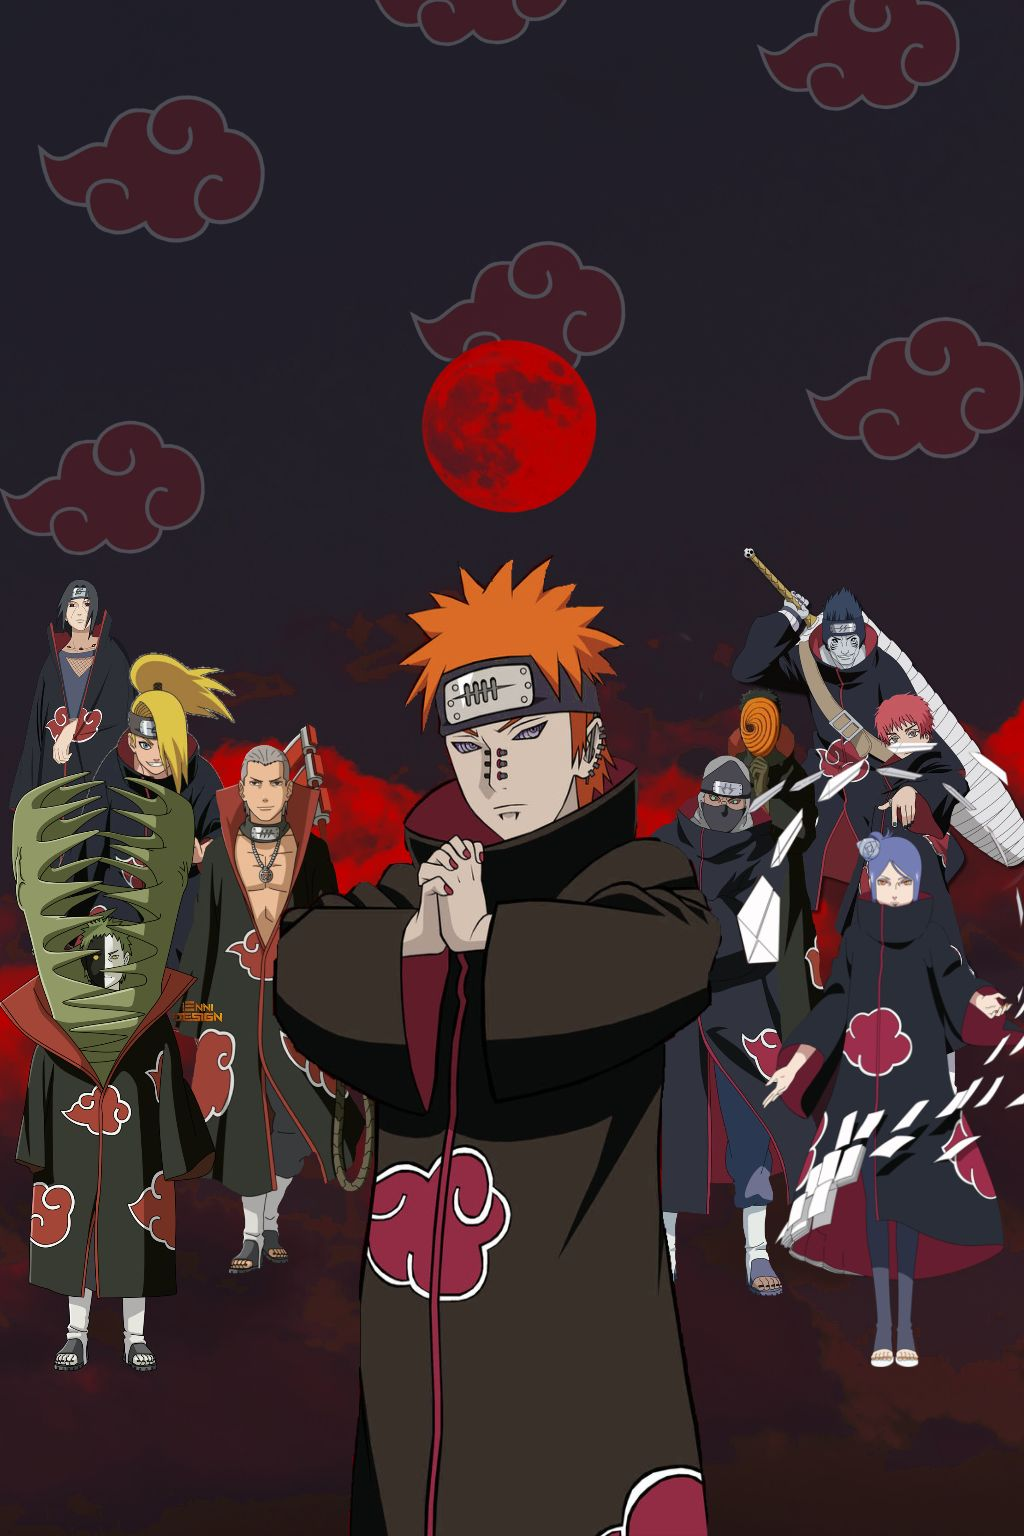 Sasori Wallpaper Pain Naruto 2885723 Hd Wallpaper Backgrounds Download